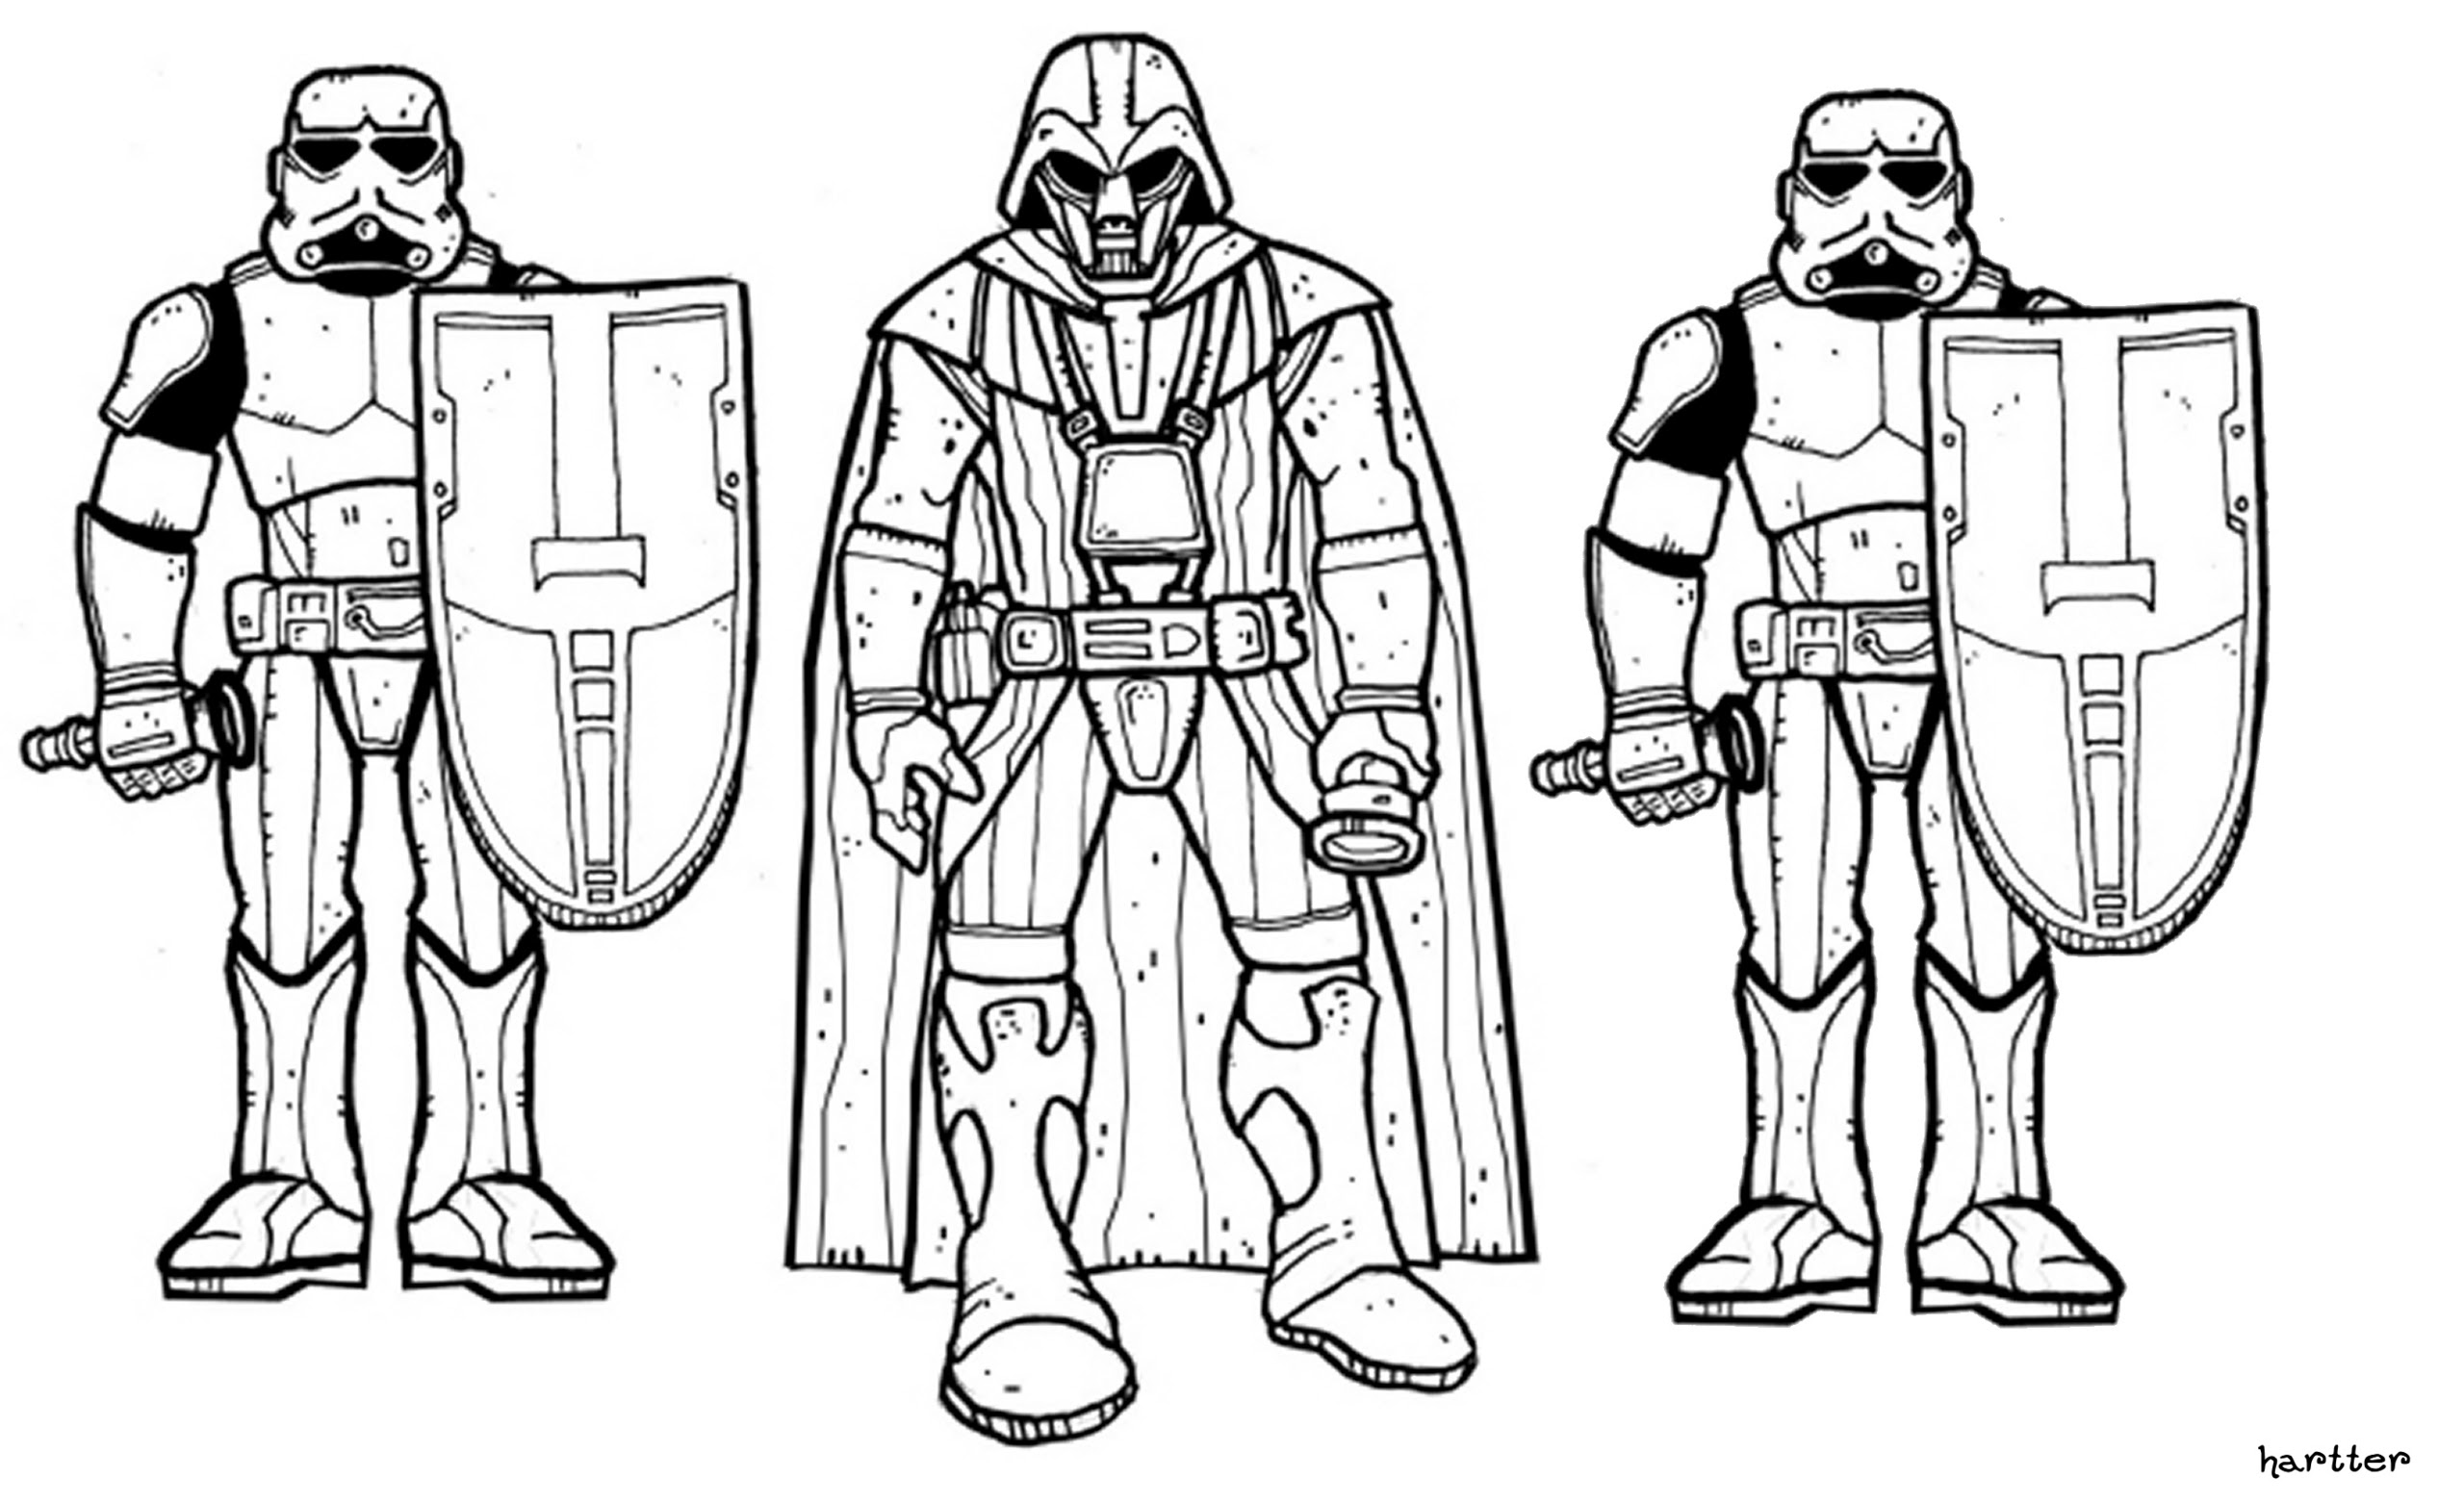 Star wars soundboard coloring pages Star Wars clone Star Wars galaxy